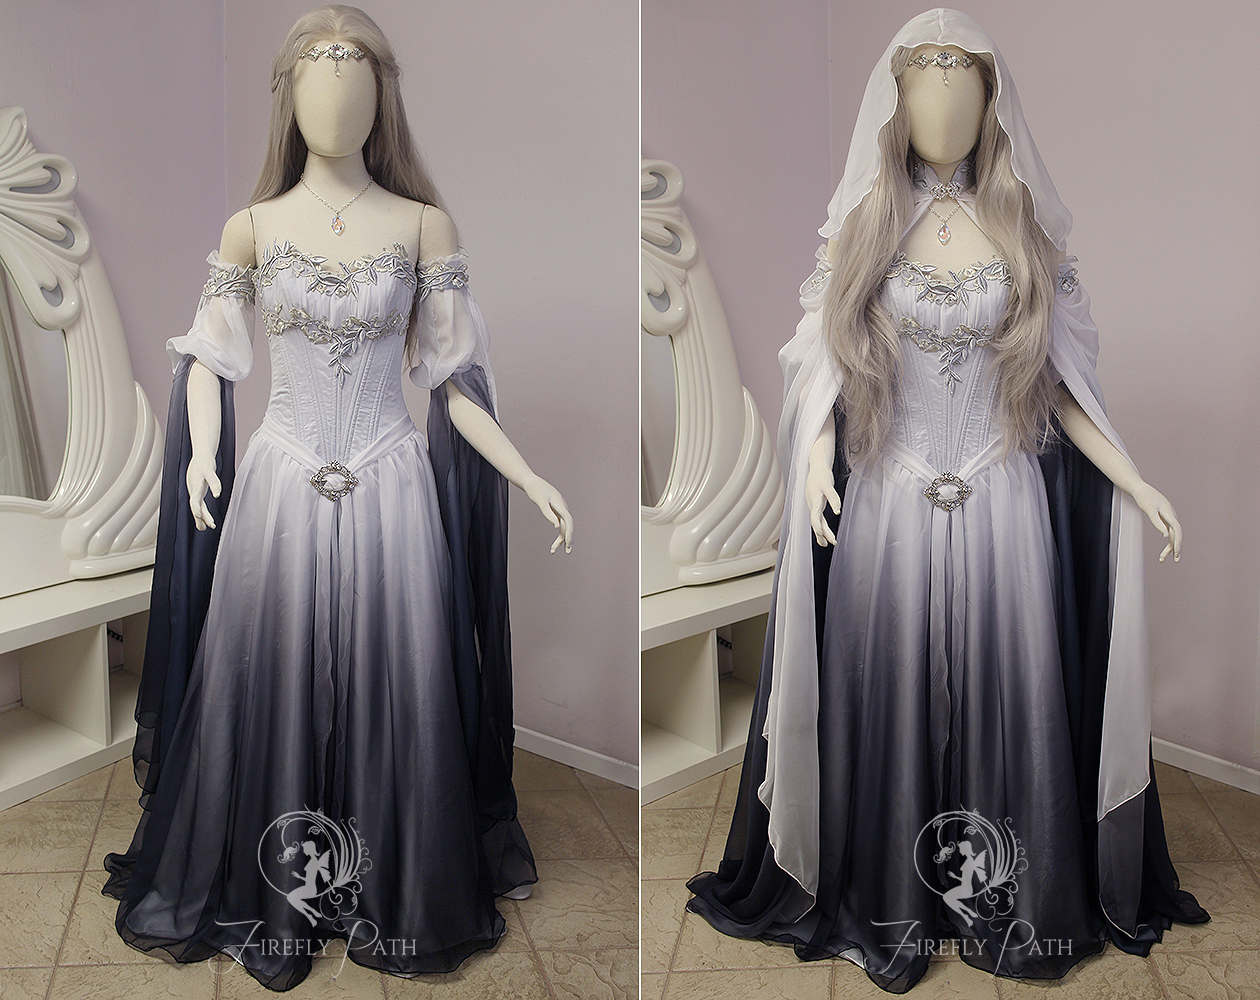 Lord Of The Rings Inspired Dresses